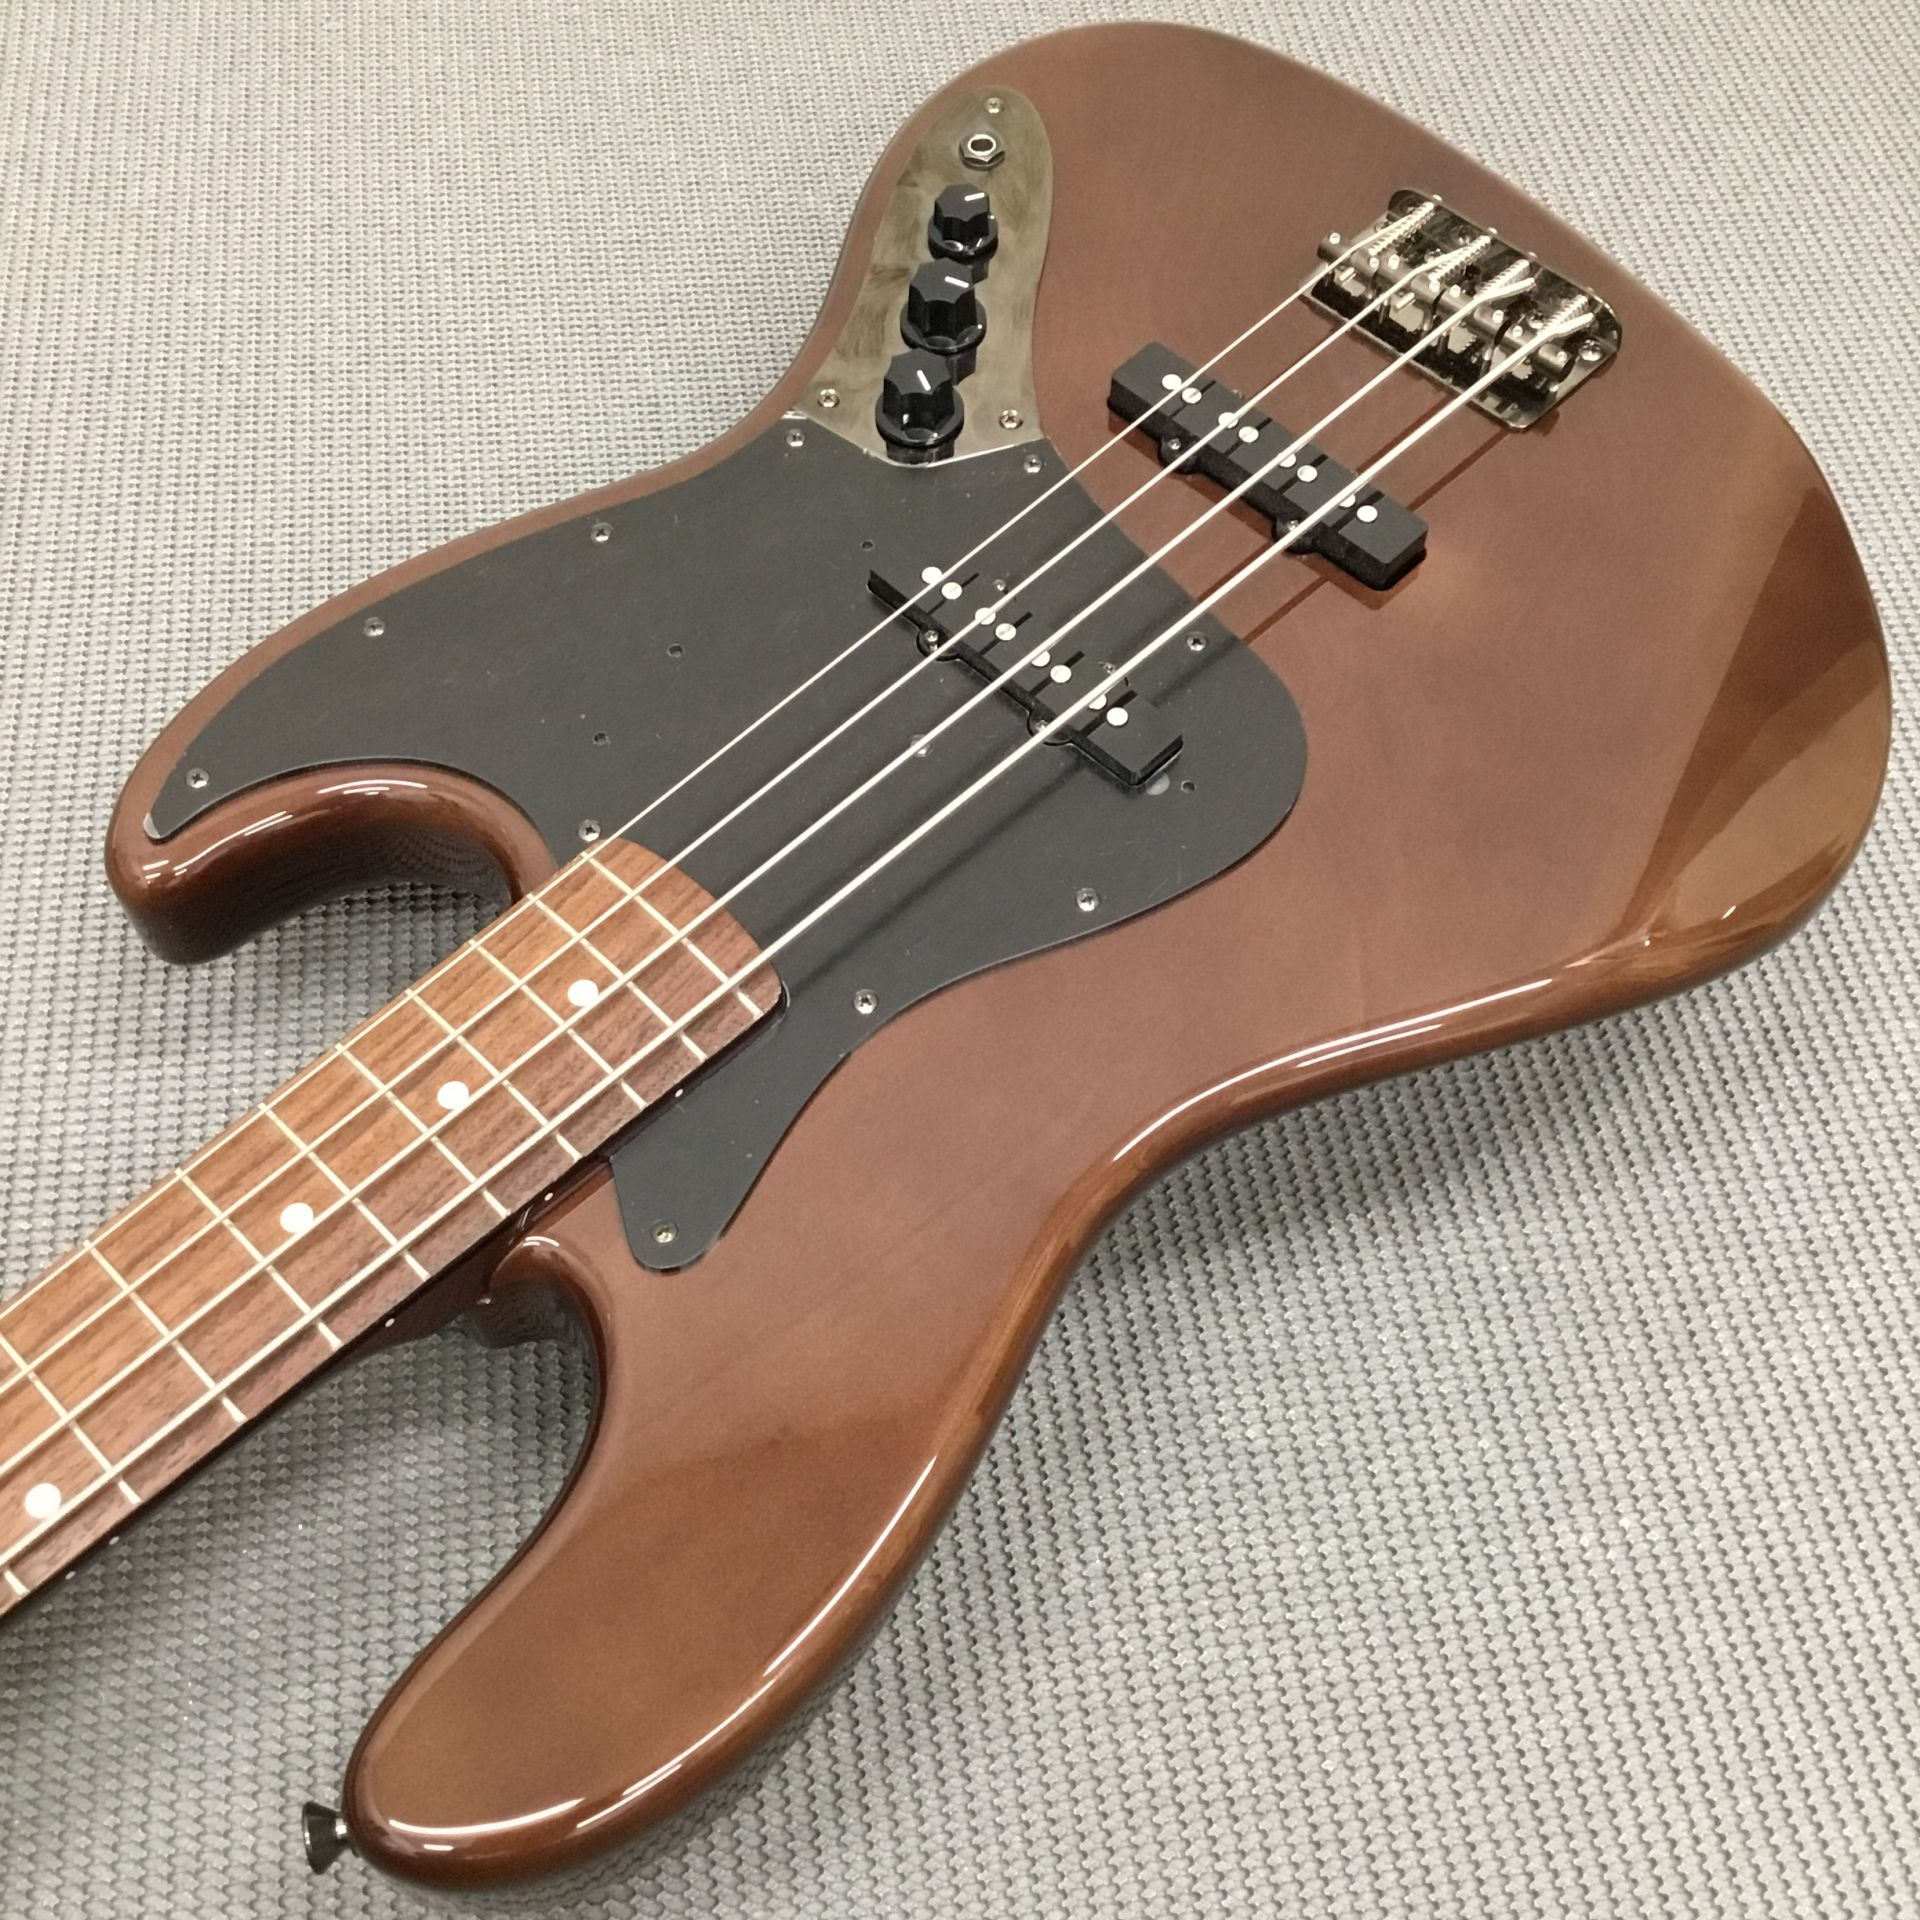 MADE IN JAPAN TRADITIONAL 60S JAZZ BASS WALNUTのケース・その他画像